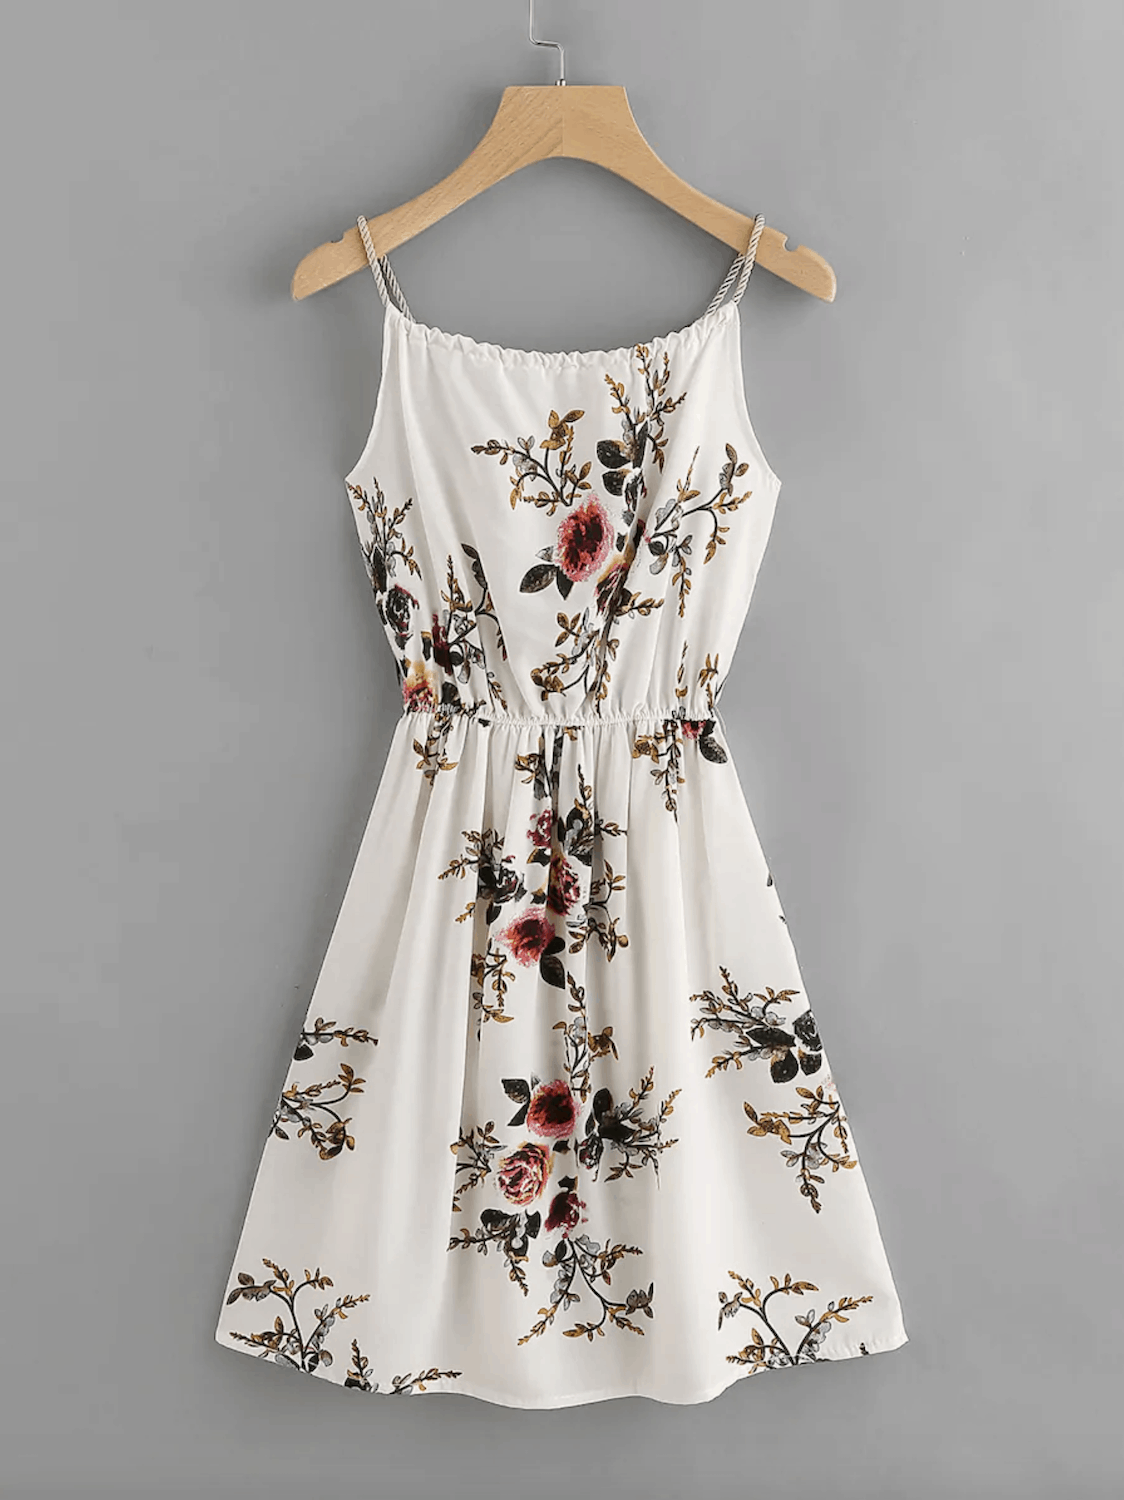 Summer Honeymoon Outfits Floral Print Self Tie Cami Dress